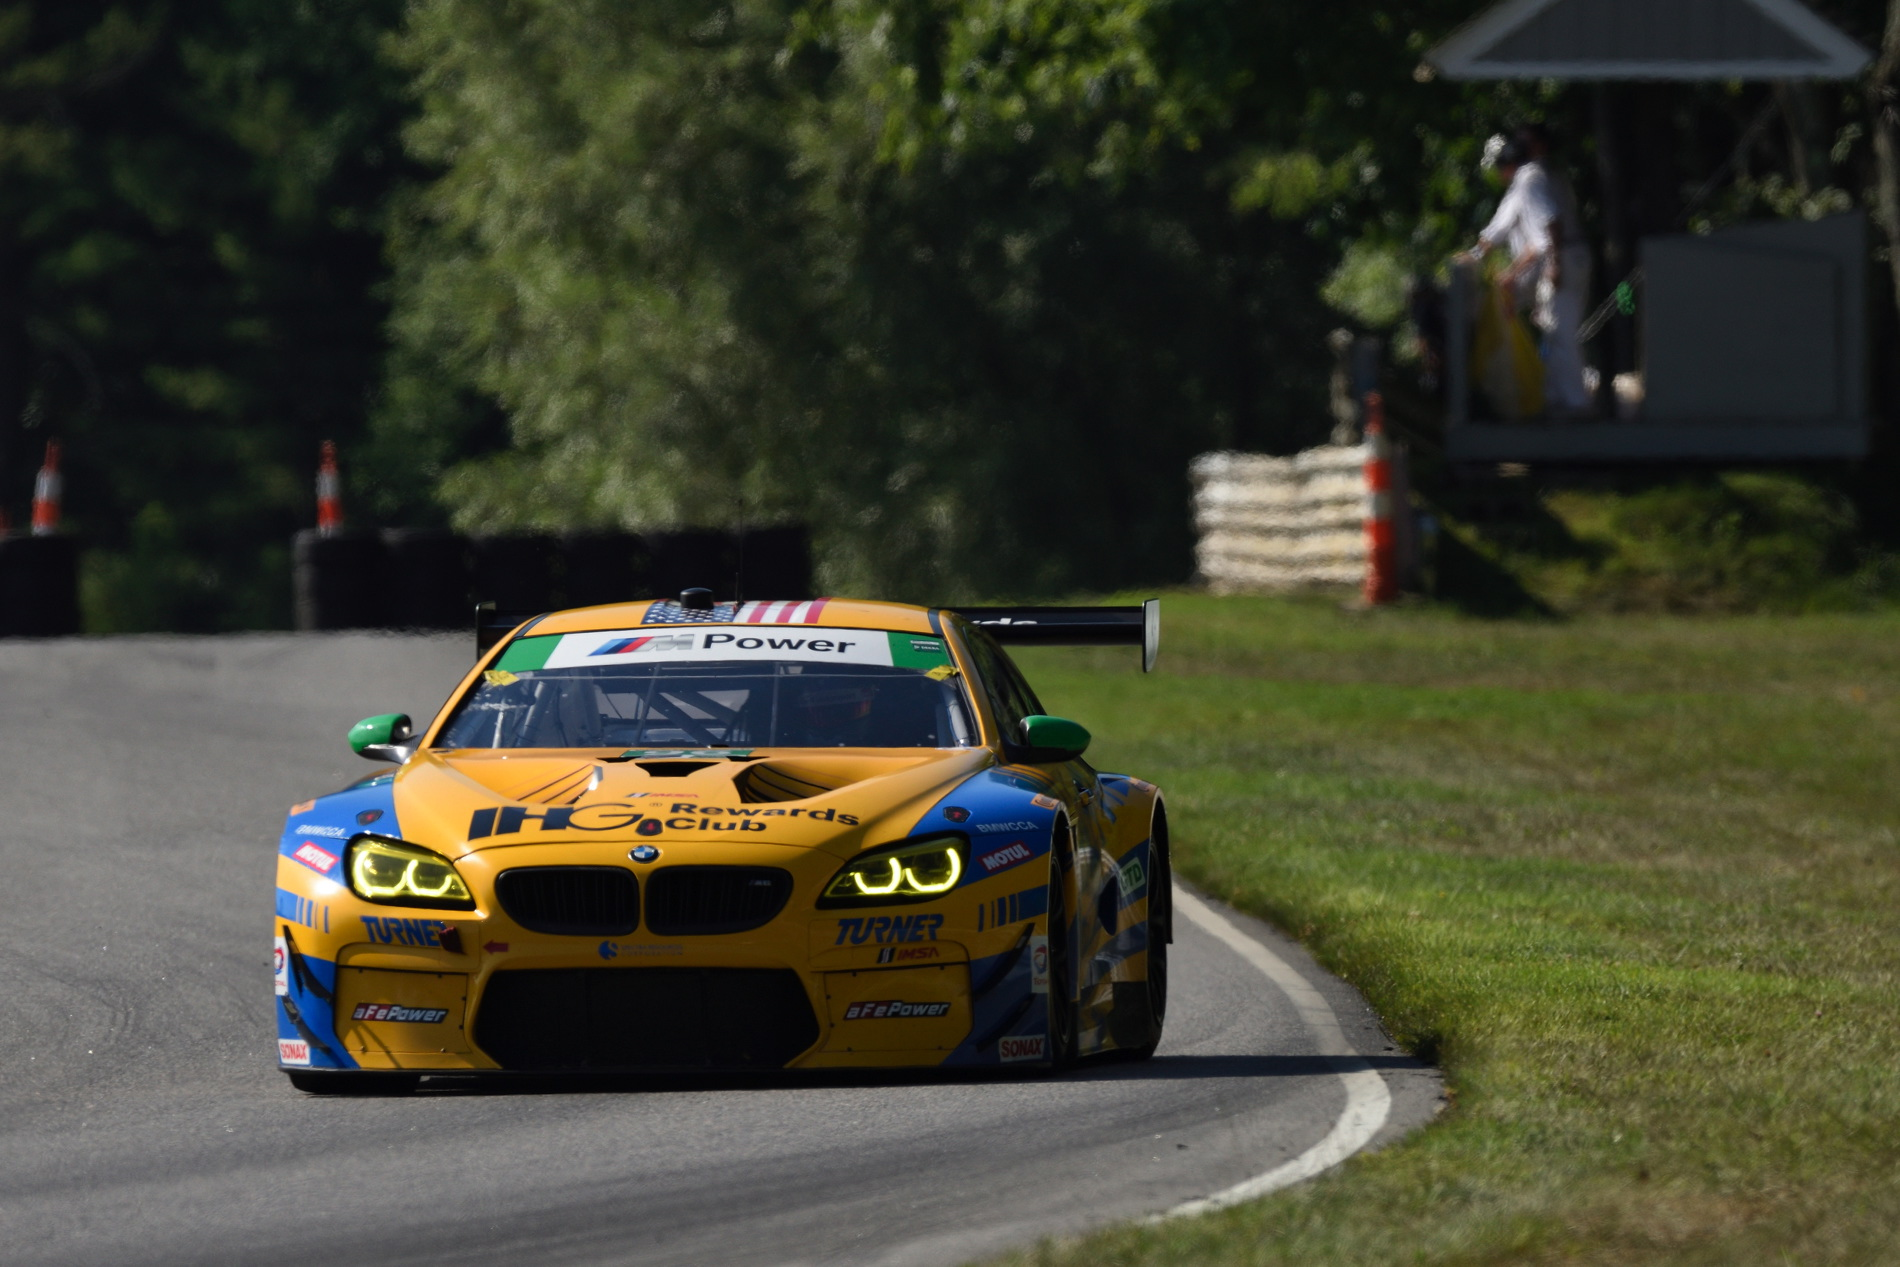 BMW M6 GTLM racing cars ended the day on the wrecker at Northeast Grand Prix